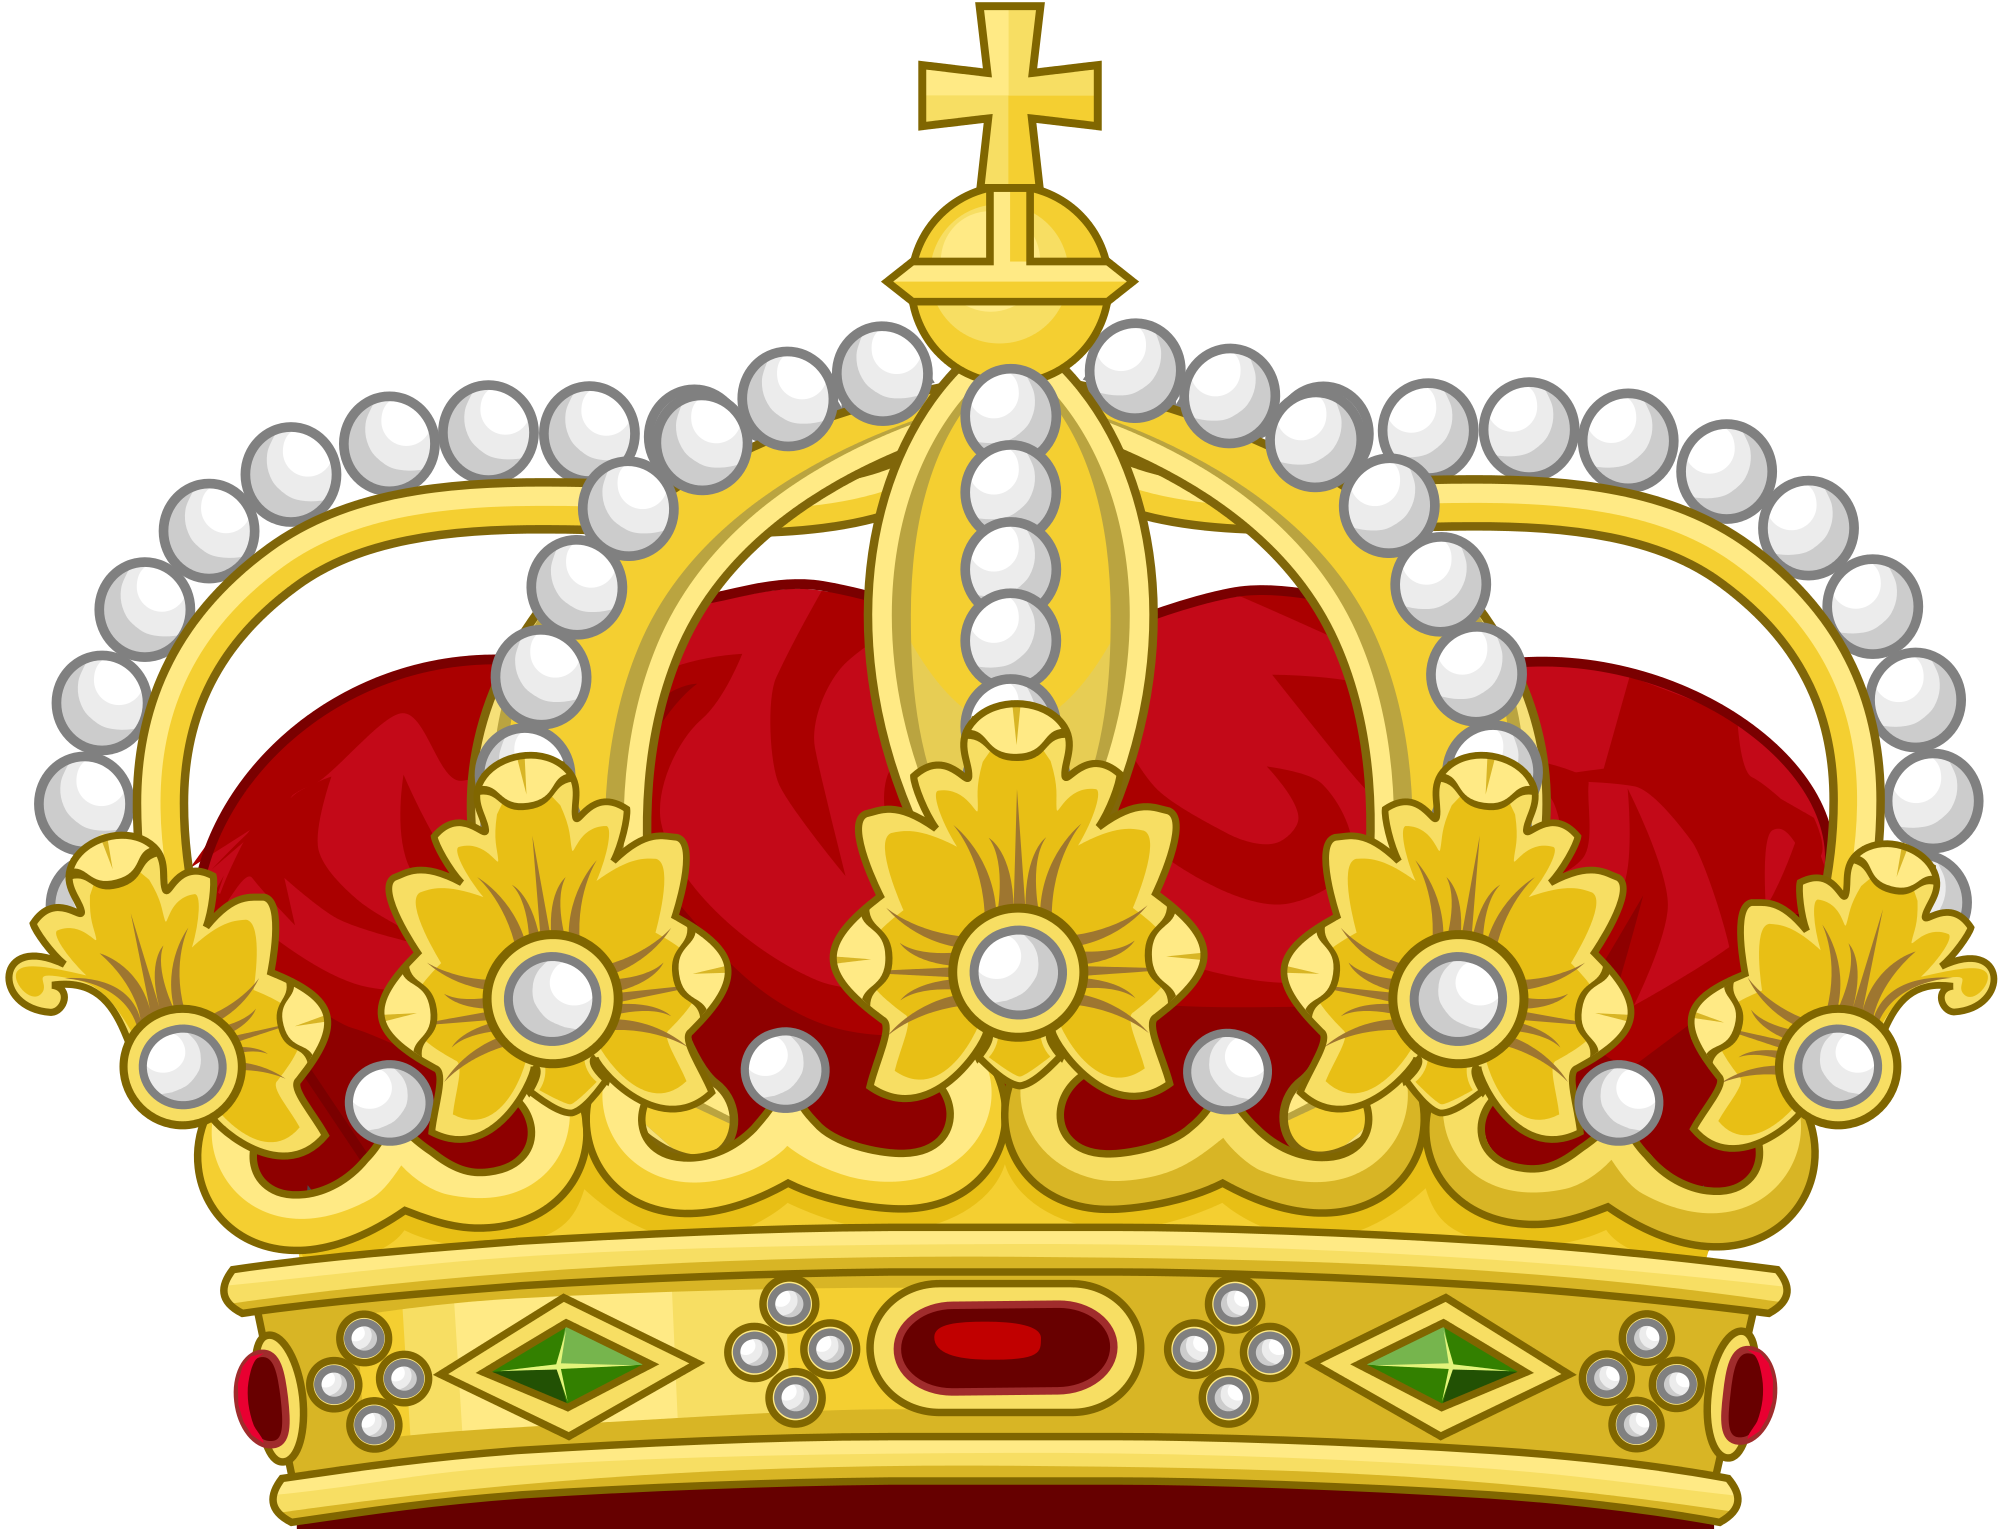 File:Heraldic Royal Crown of the King of the Romans (18th Century.